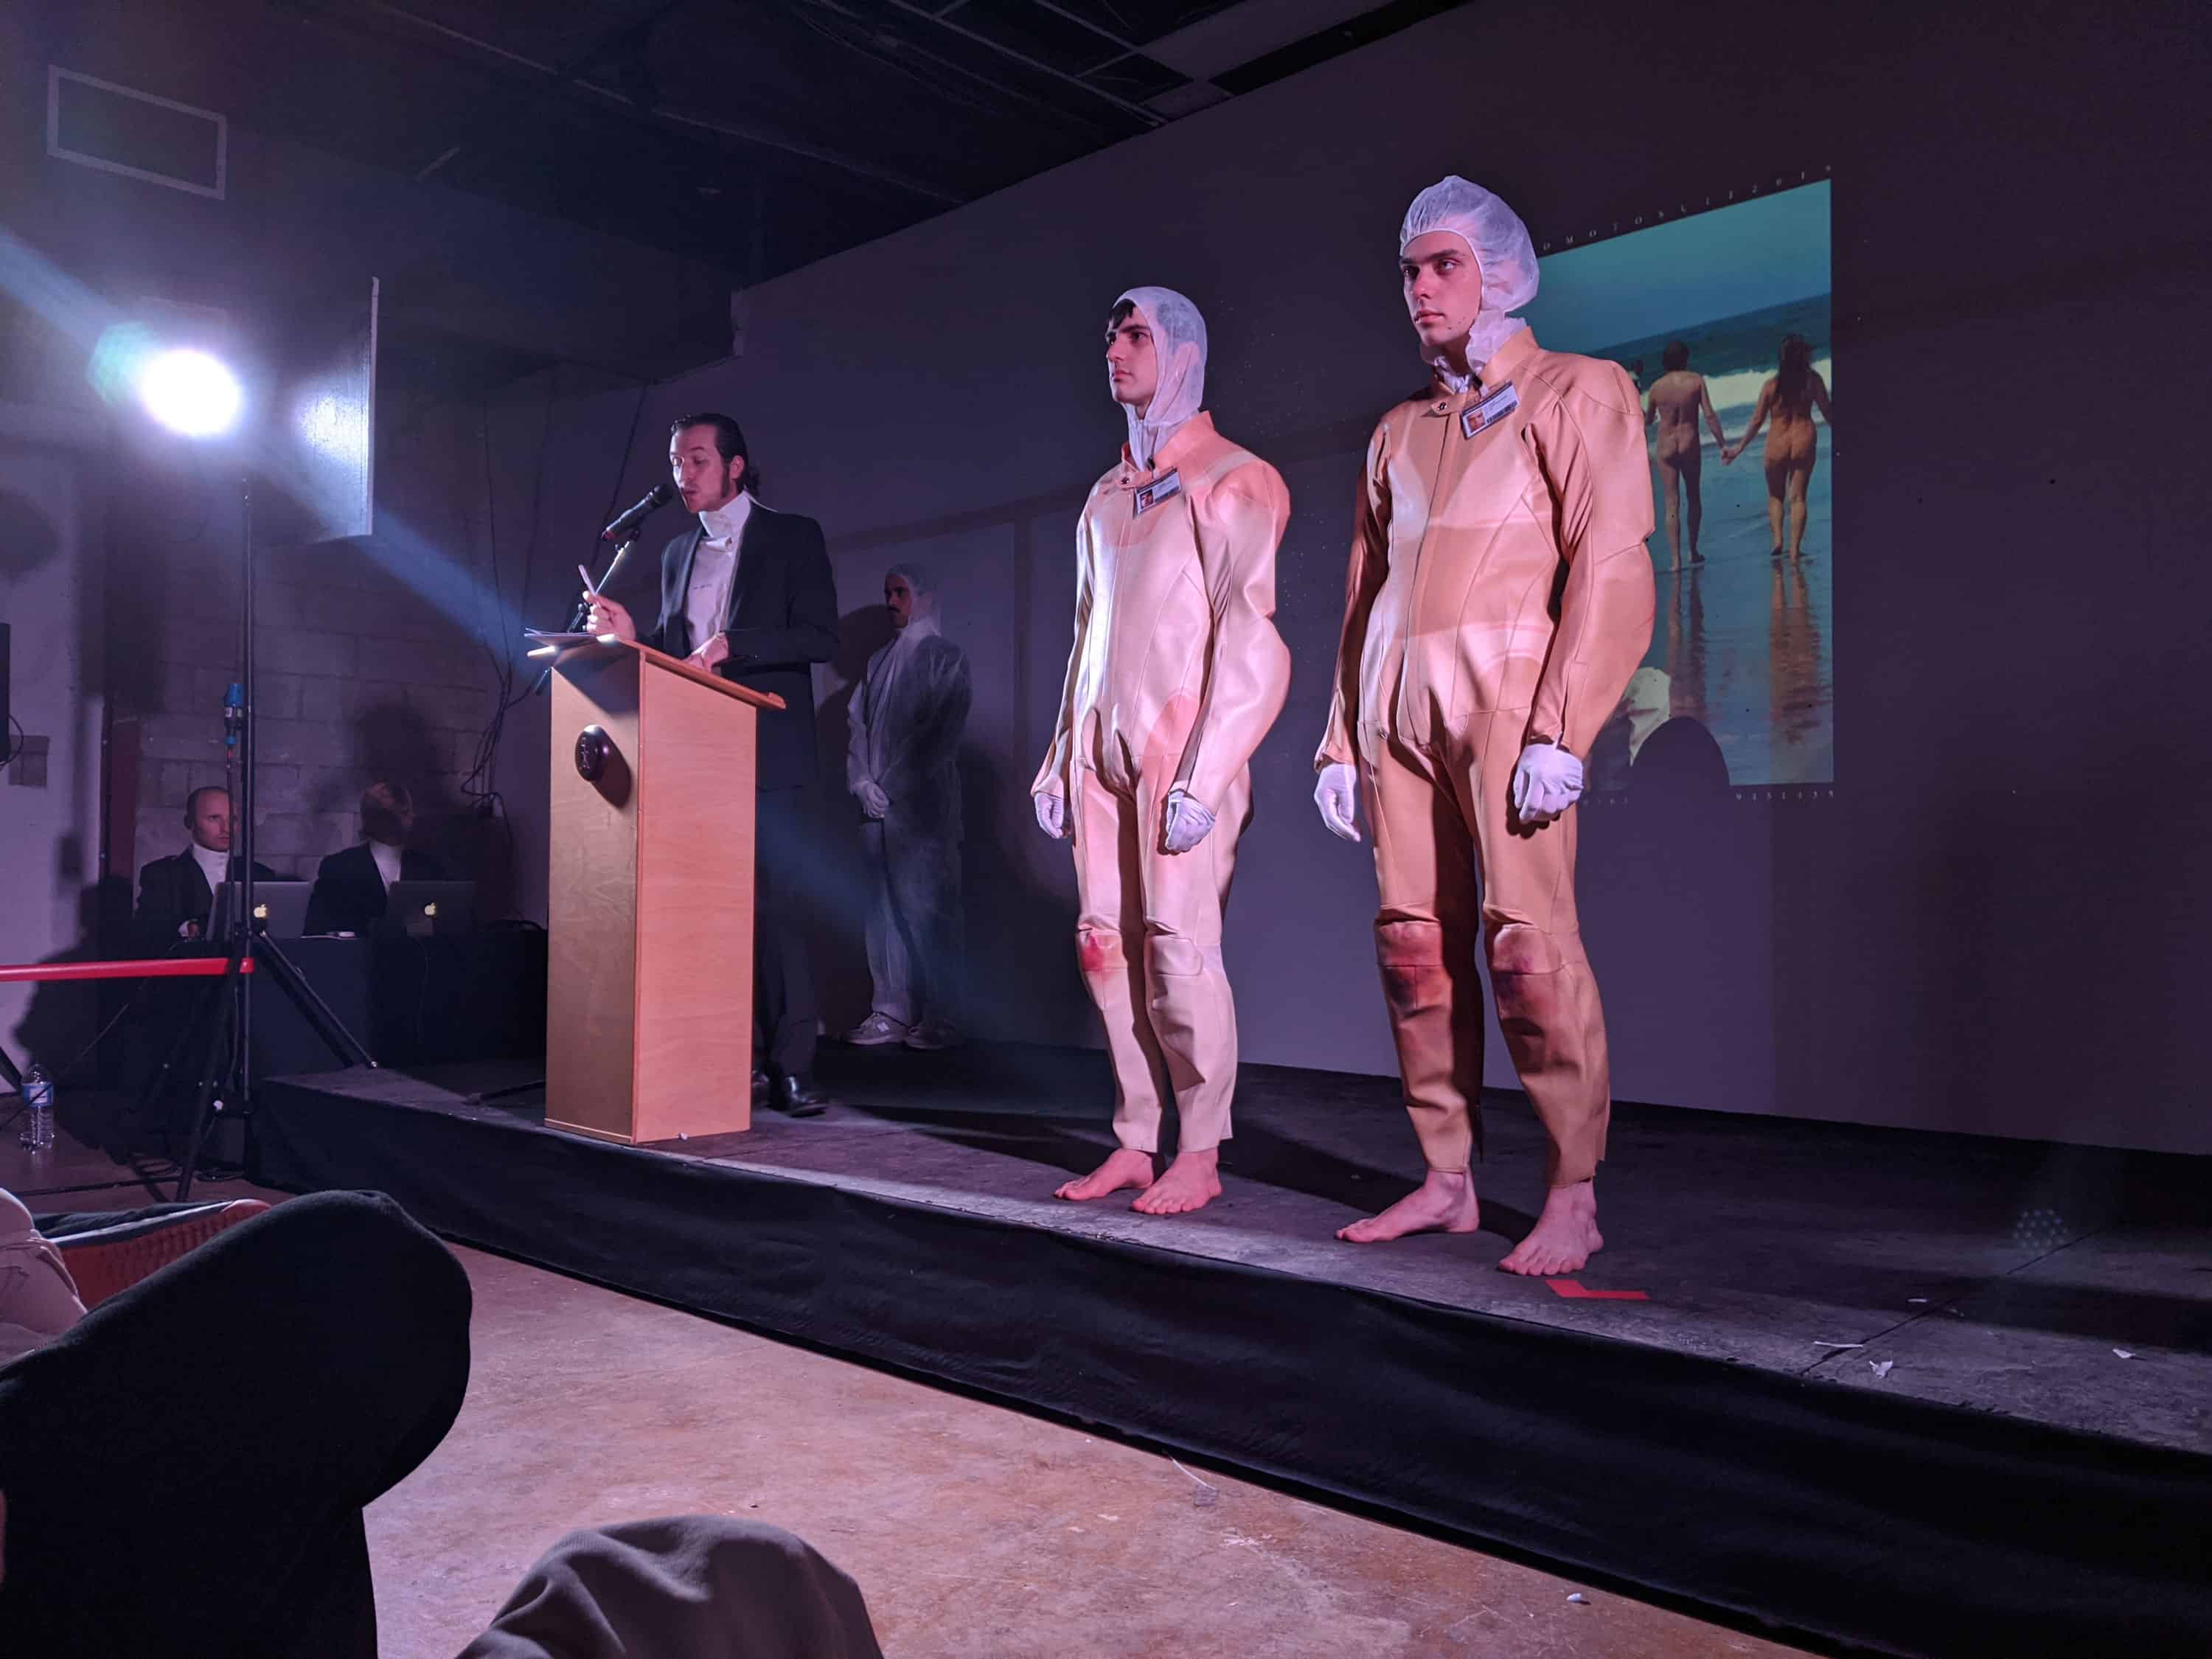 ©®38191613162016135195209451435, 'Sand Motosuit', AuctionCR28112019, 2019. Performance, curated by Belinda Martin Porras, The Biscuit Factory, London